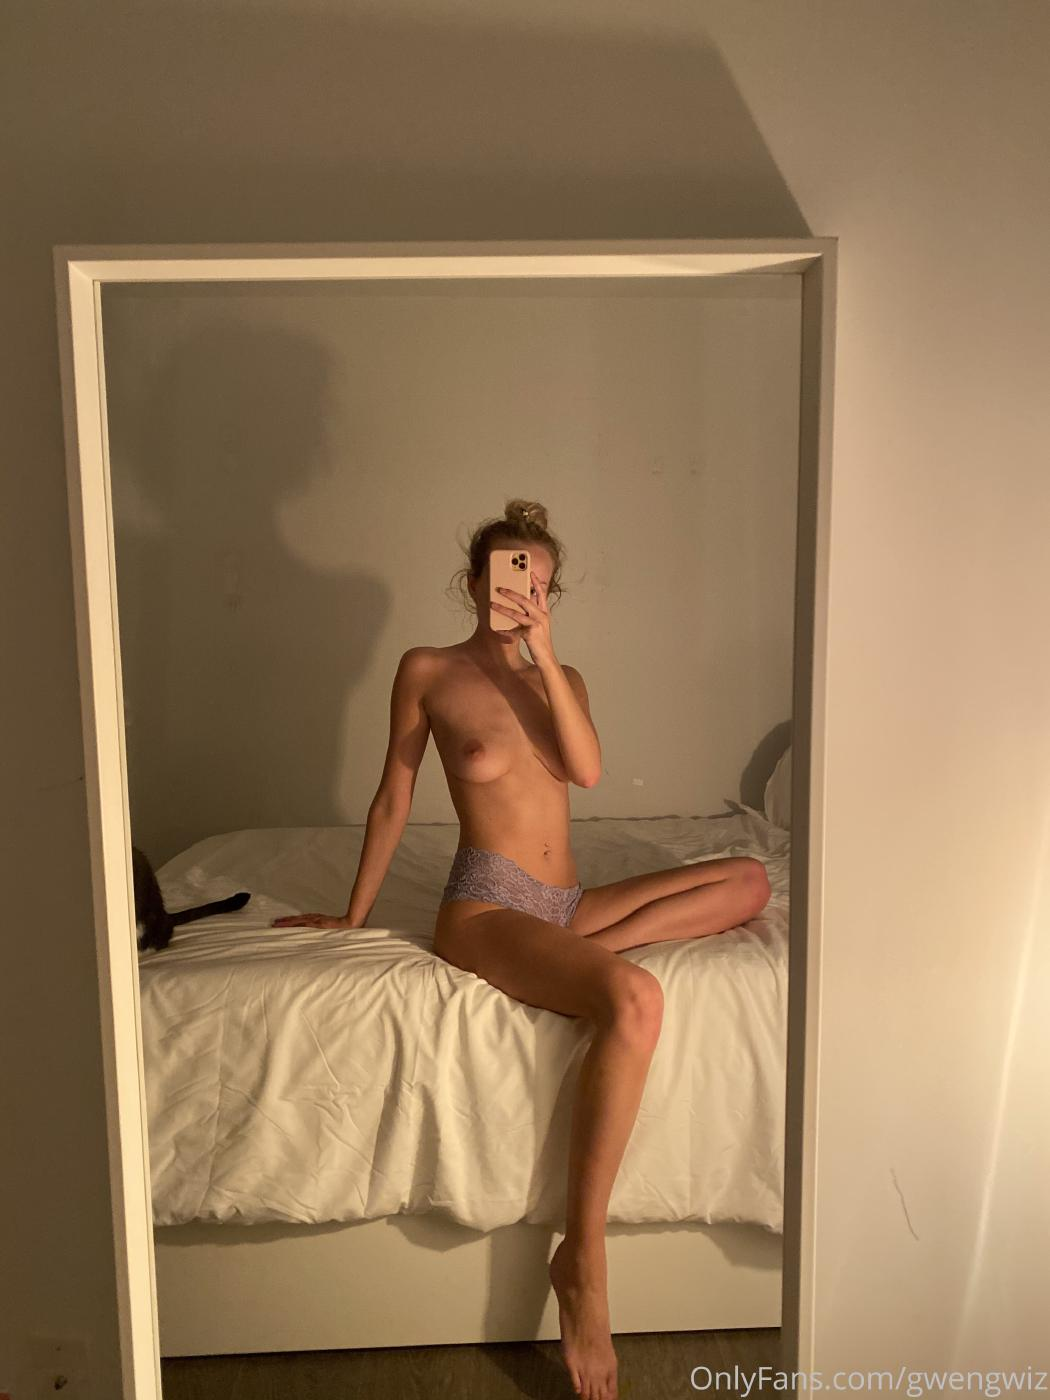 Gwengwiz Nude Onlyfans Collection Leaked 0013